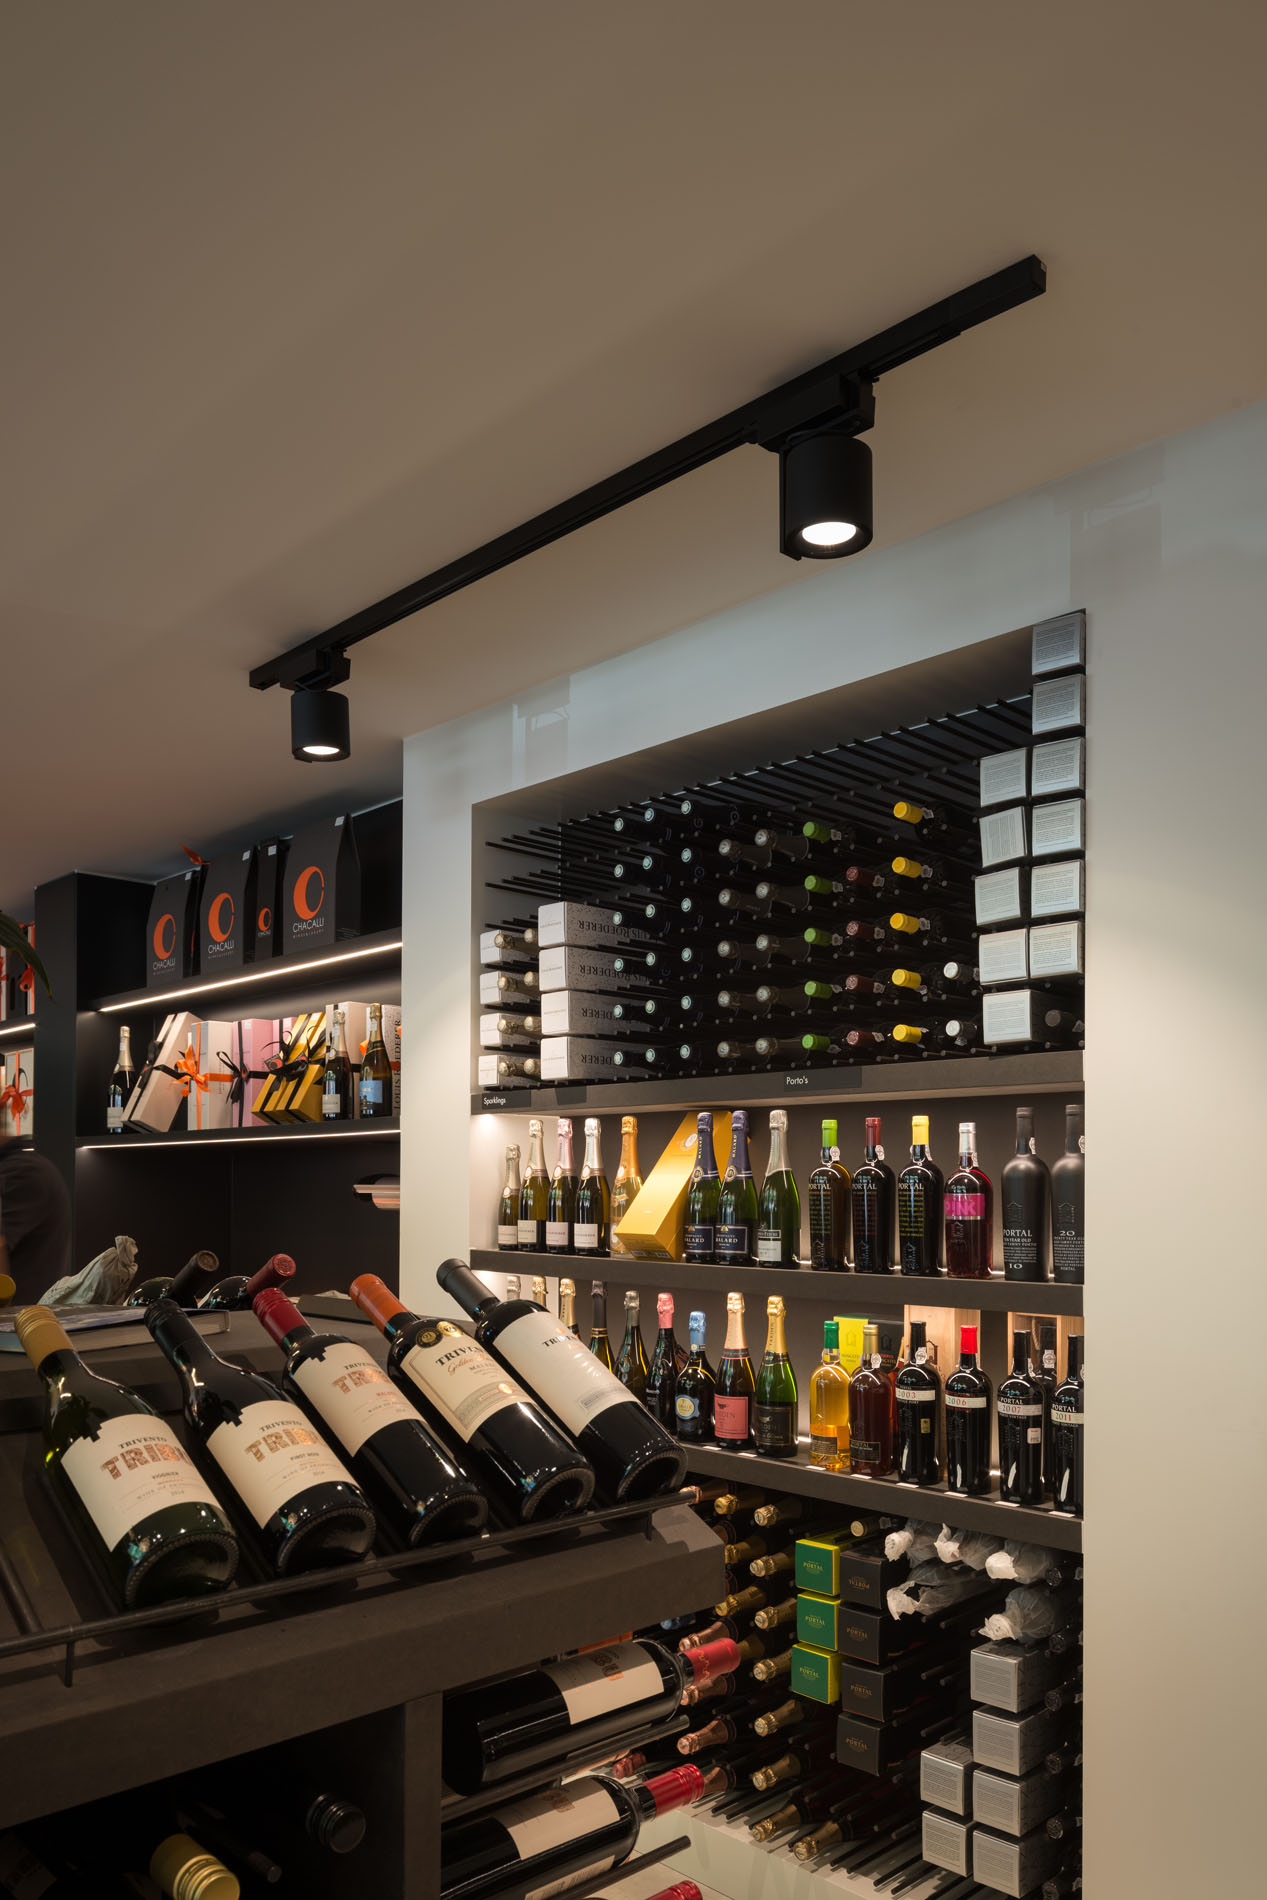 Chacalli Wines, Antwerpen (BE) image 1